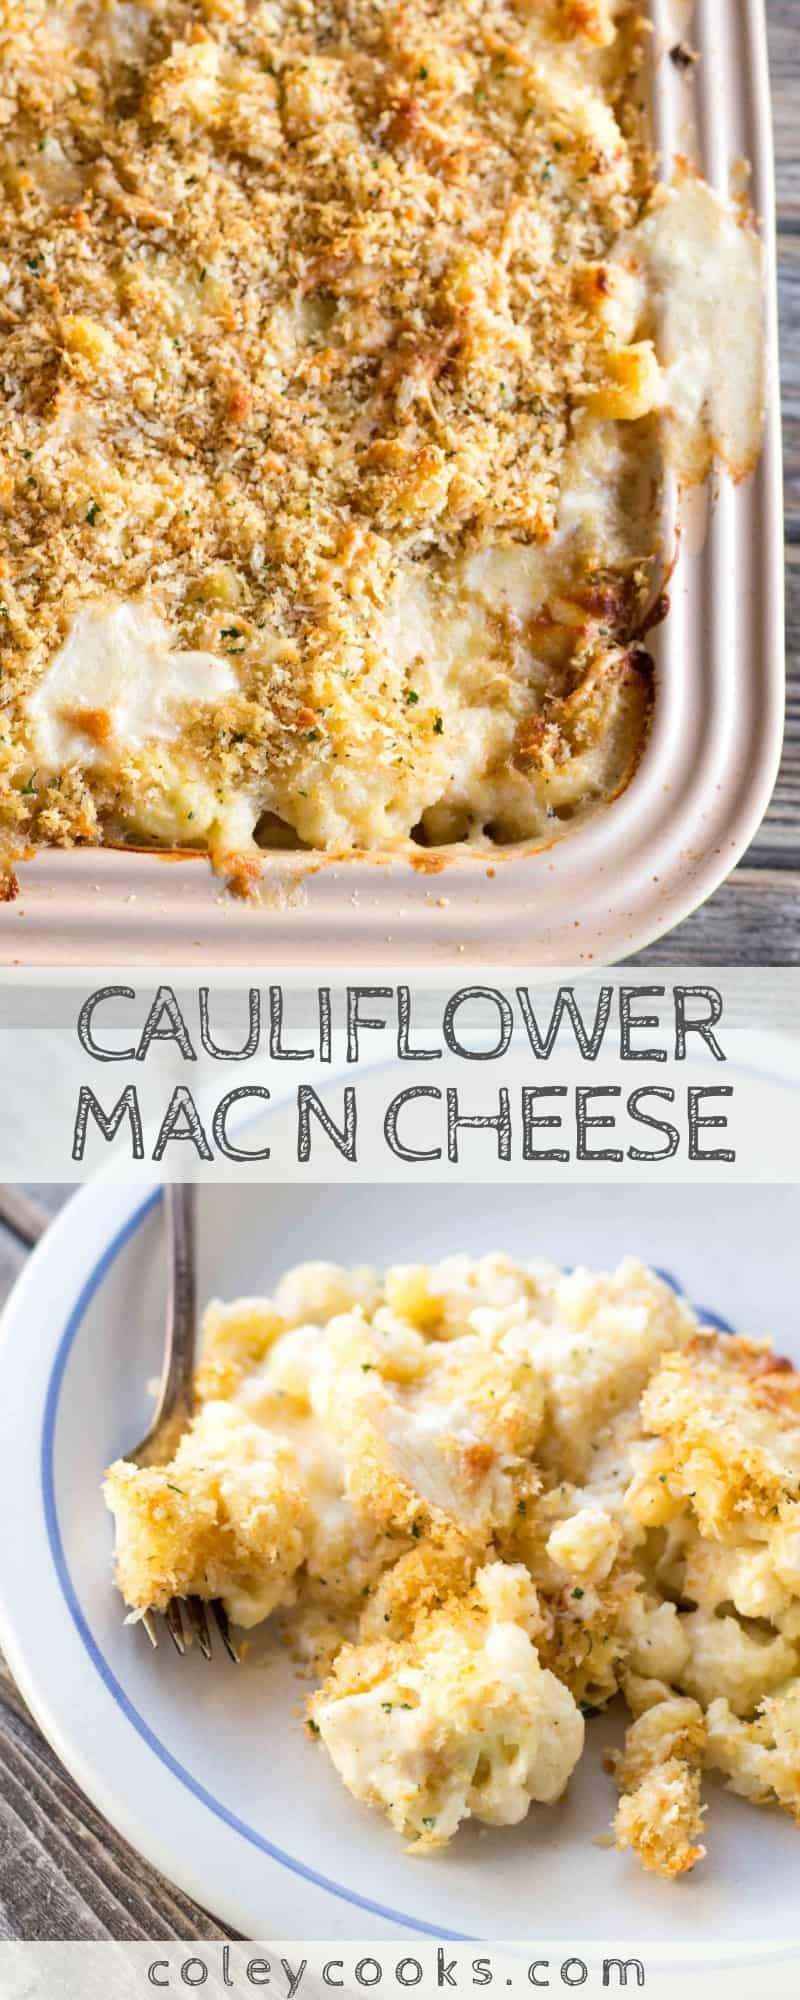 CAULIFLOWER MAC N CHEESE | Cauliflower replaces half of the pasta in this crazy good macaroni and cheese recipe. Great recipe for serving a crowd! #macaroni #cheese #cauliflower #Christmas #dinner #entertaining #party #recipe #easy | ColeyCooks.com